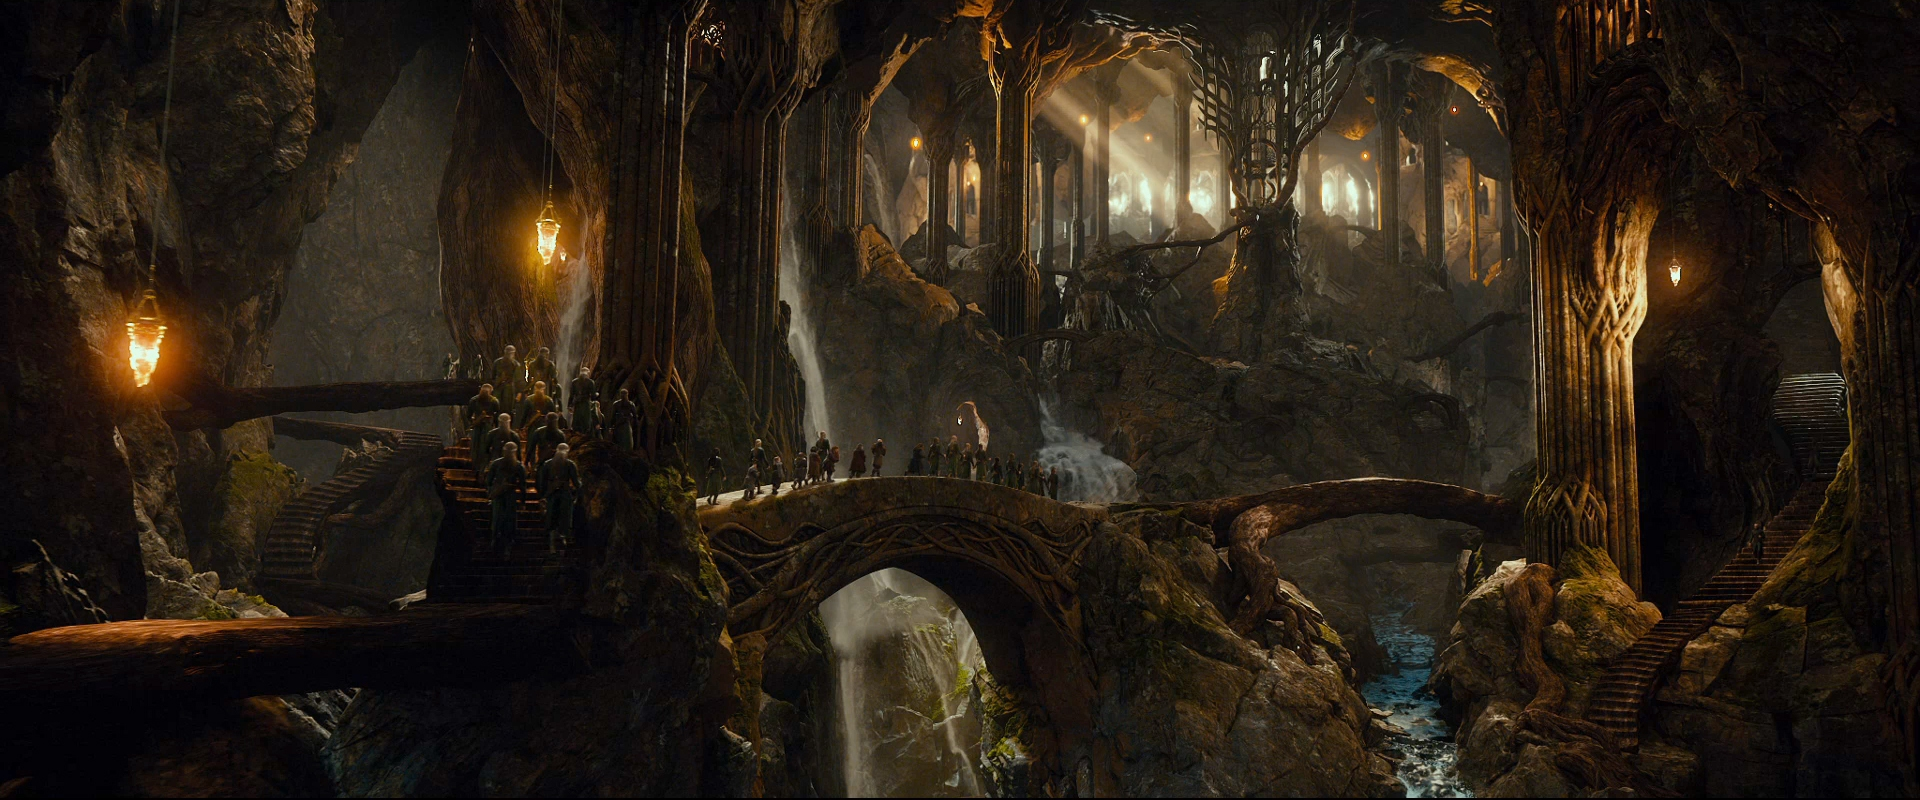 desolation_mirkwood.jpg